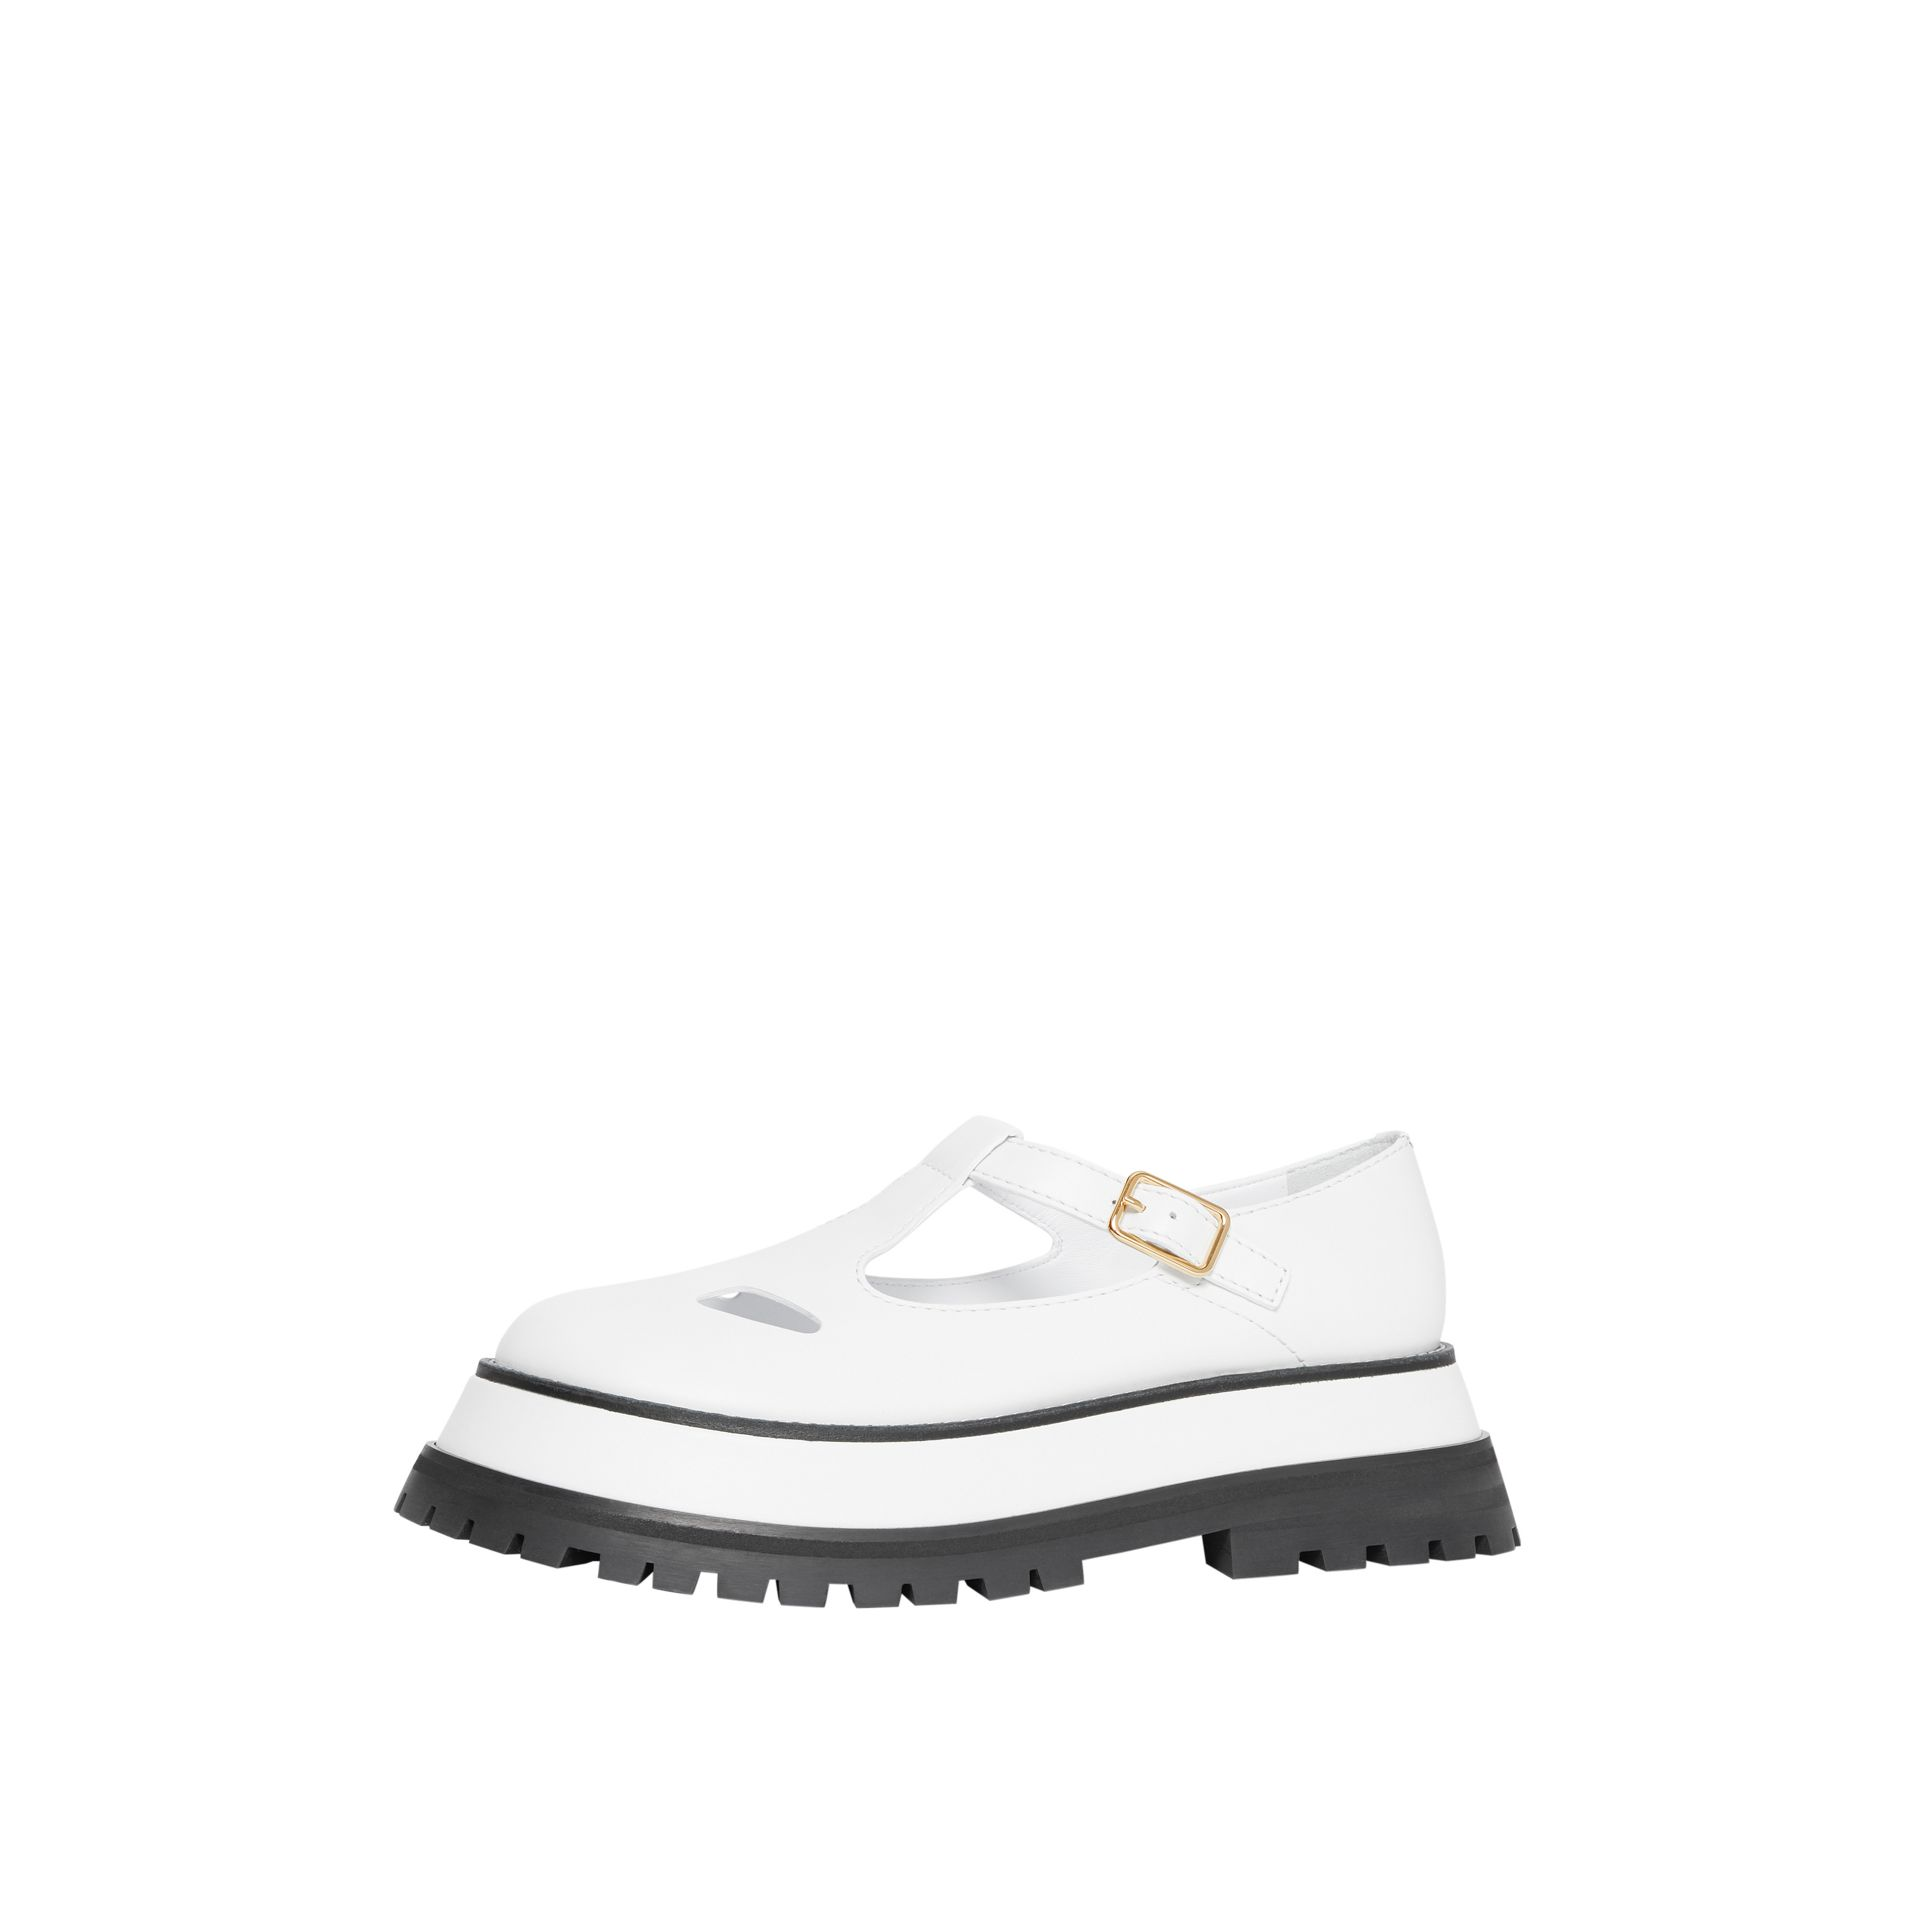 Leather T-bar Shoes in Optic White - Women | Burberry United Kingdom - gallery image 7